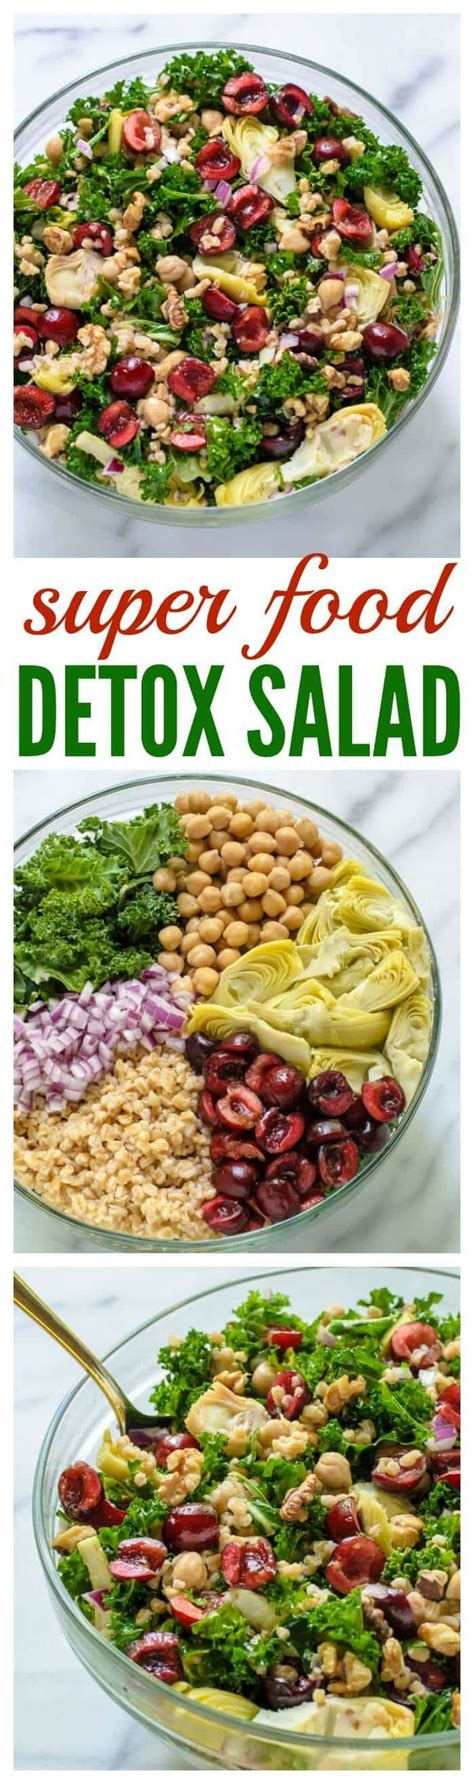 cuisine detox kroger superfood salad